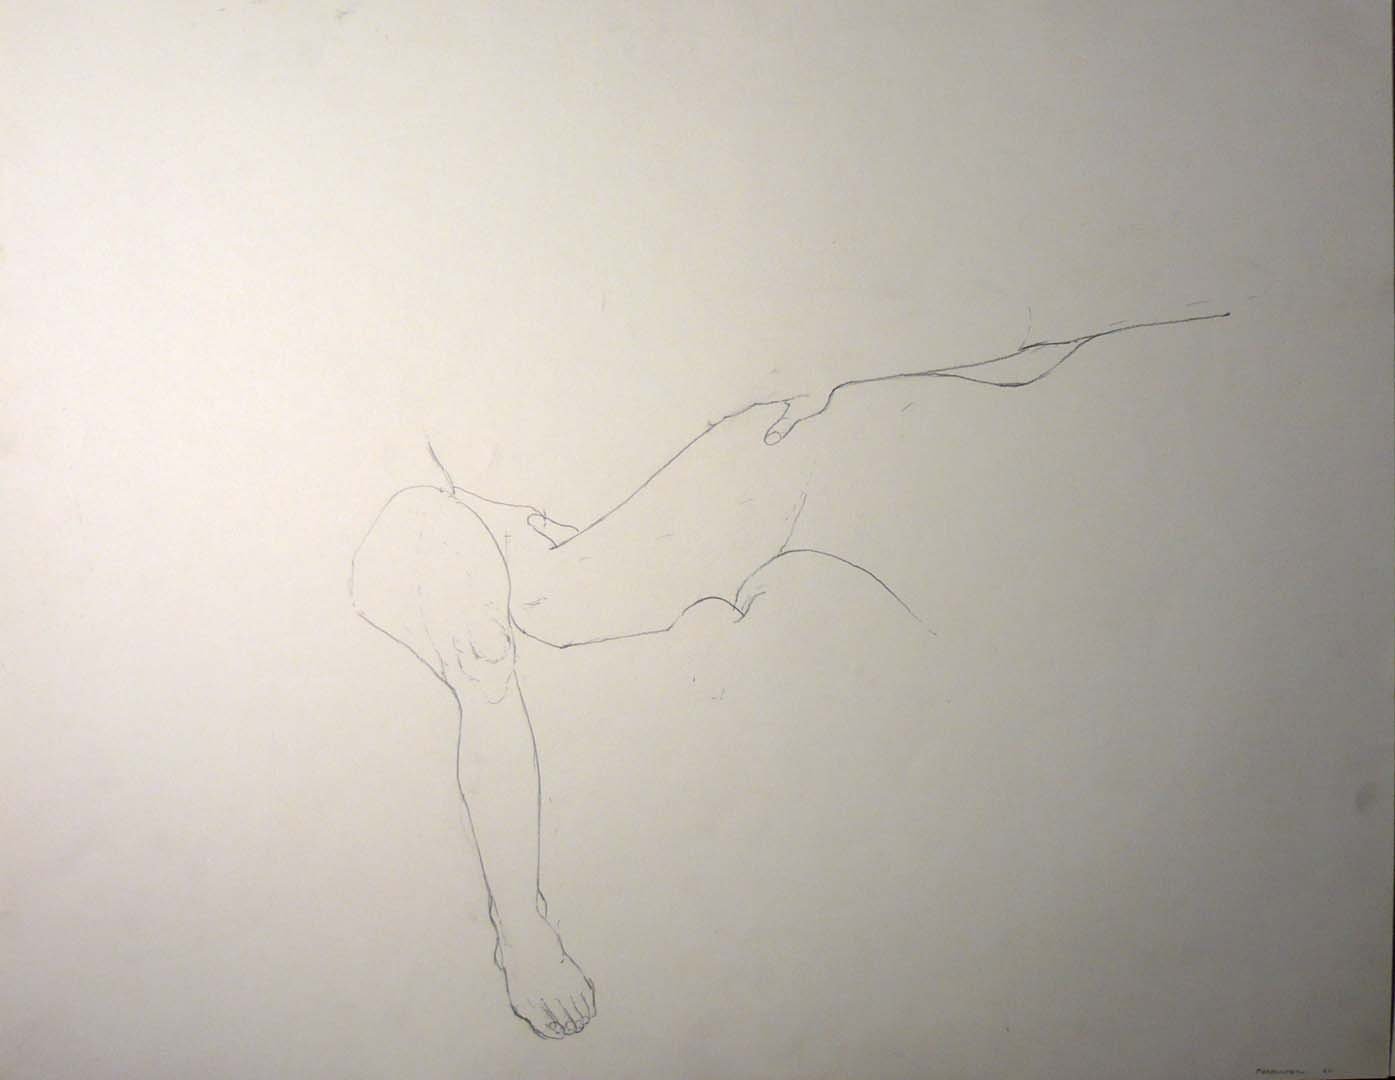 1969 Legs and a Thumb Pencil 18.875 x 23.875